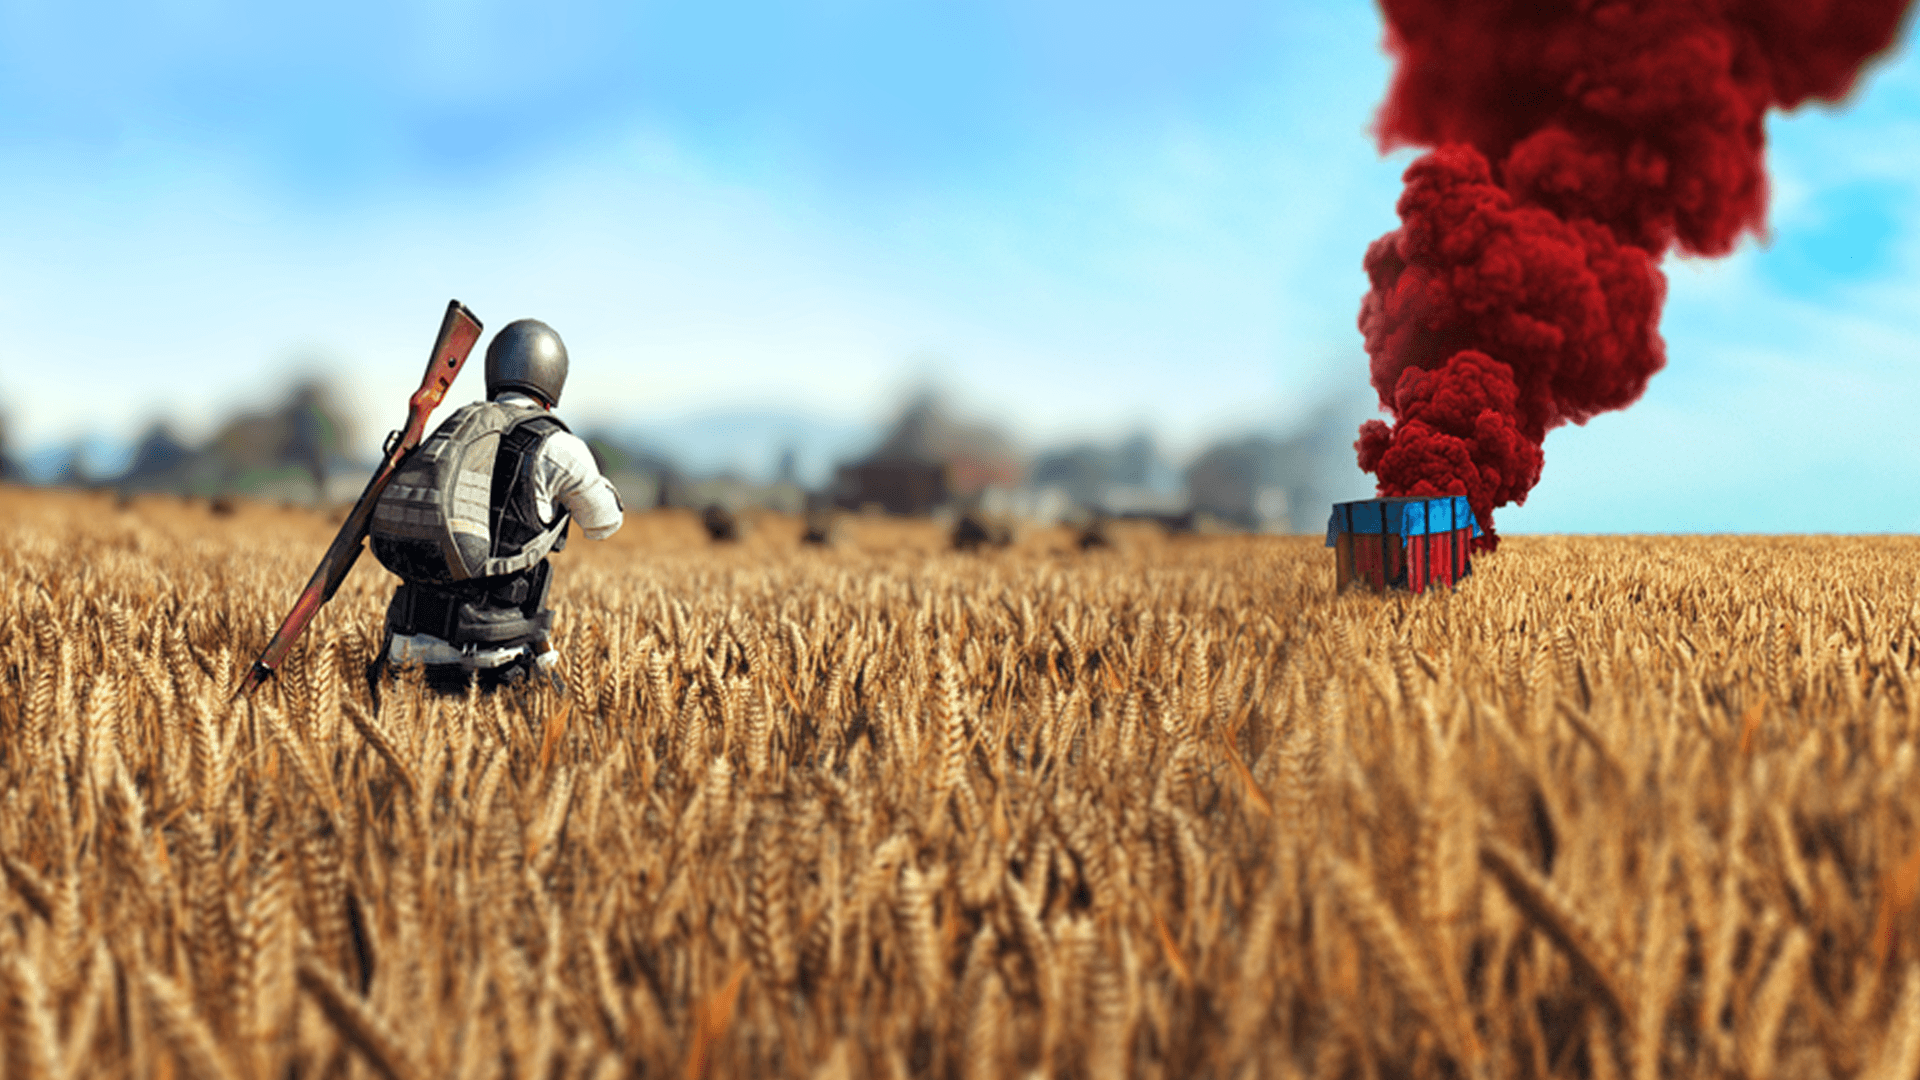 Pubg Wallpaper Hd Pic